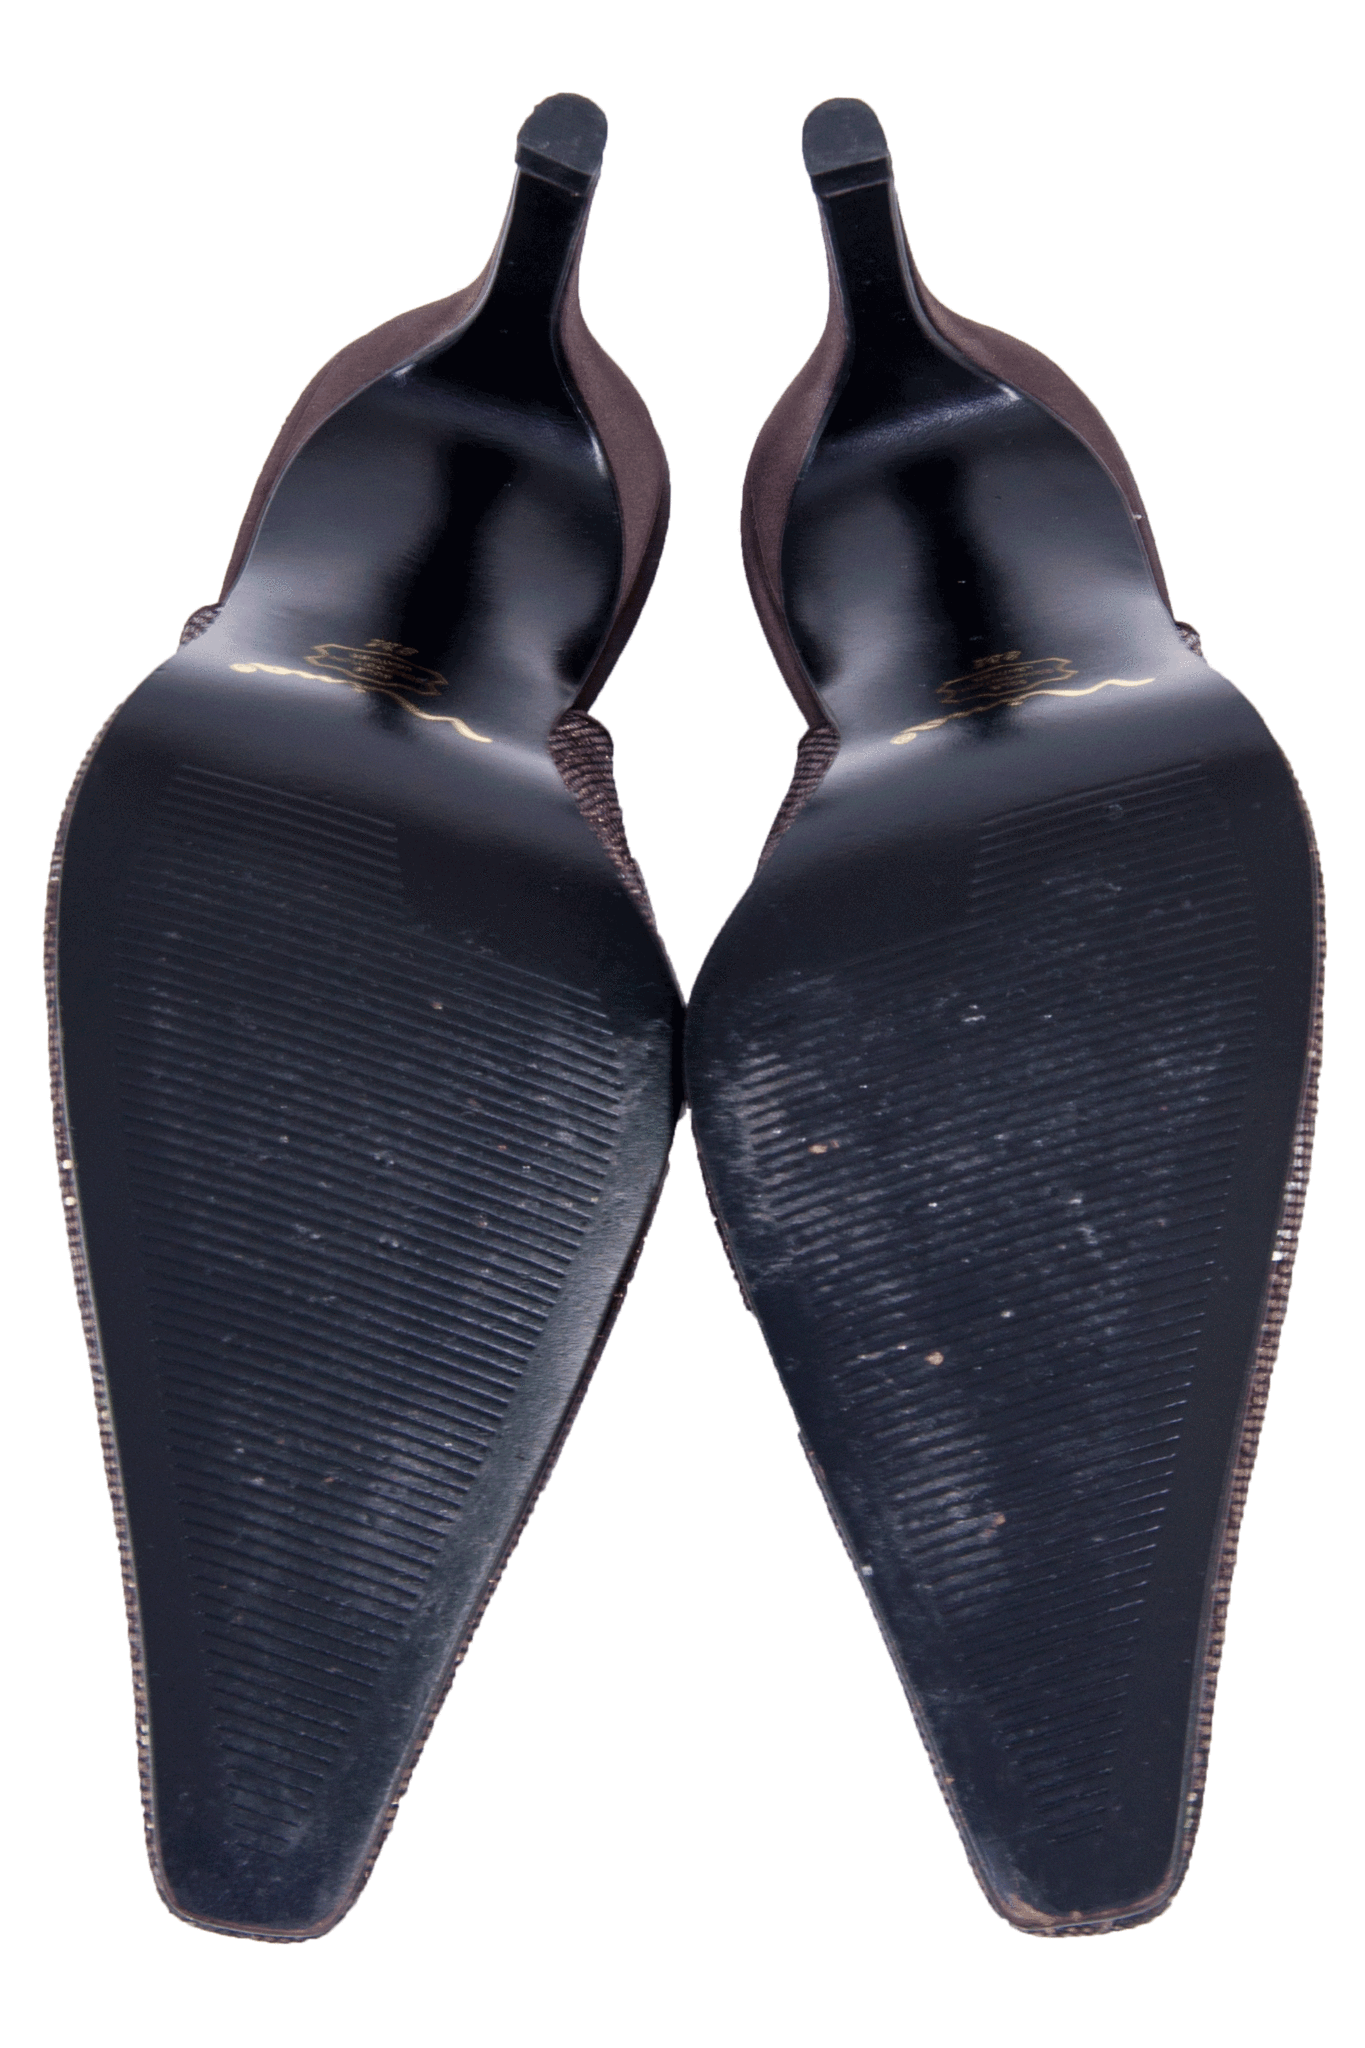 leather soles made in italy